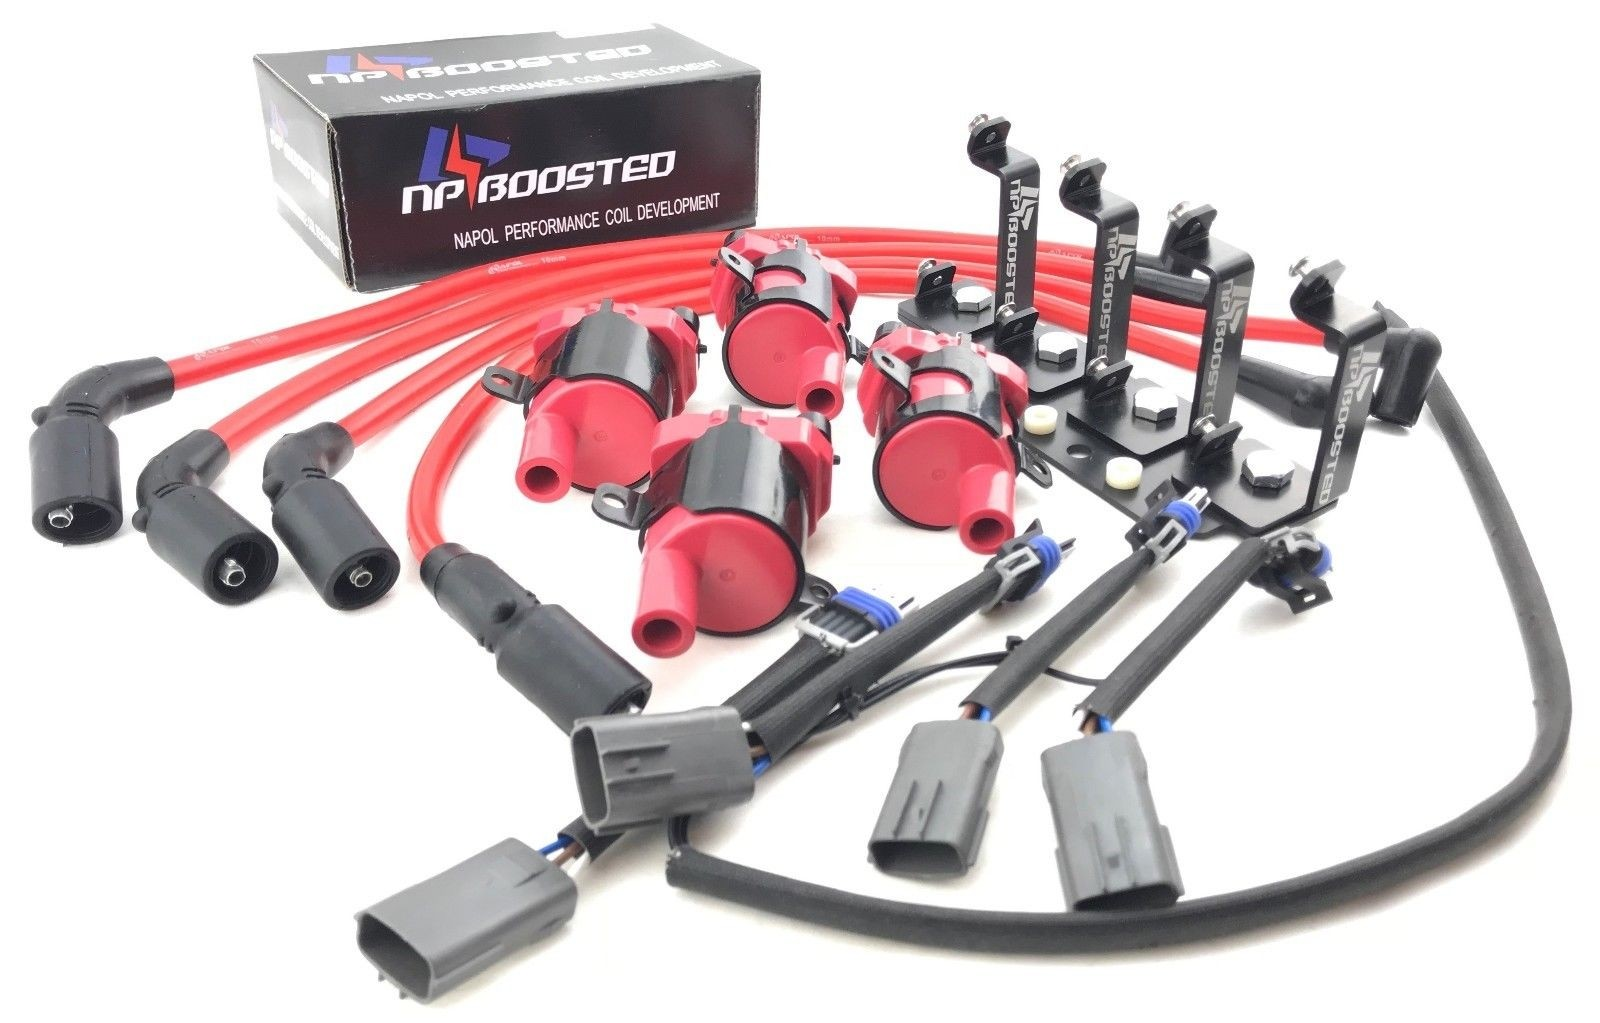 Mazda Rx 8 Rx8 D585 Ignition Coil Packs Kit Wires W Harness Tool Wire Mounting Bracket